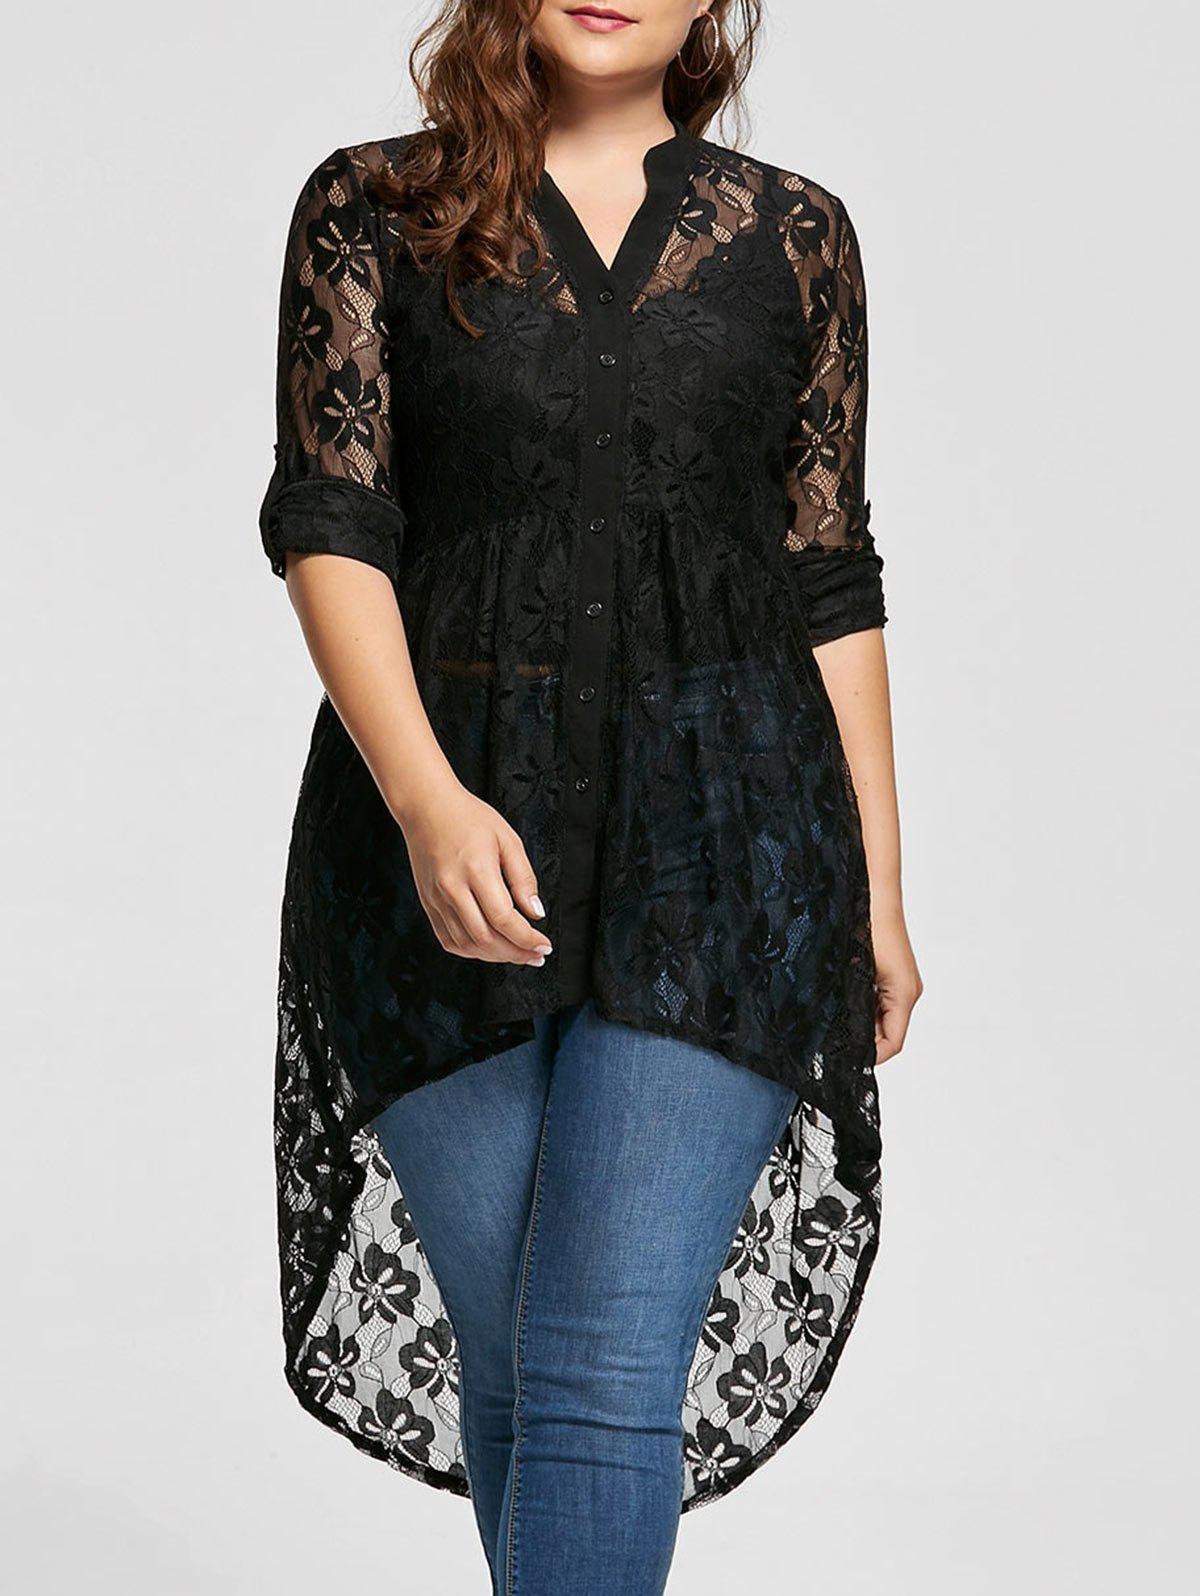 c1efeb12080 37% OFF   2019 High Low Lace Long Sleeve Plus Size Top